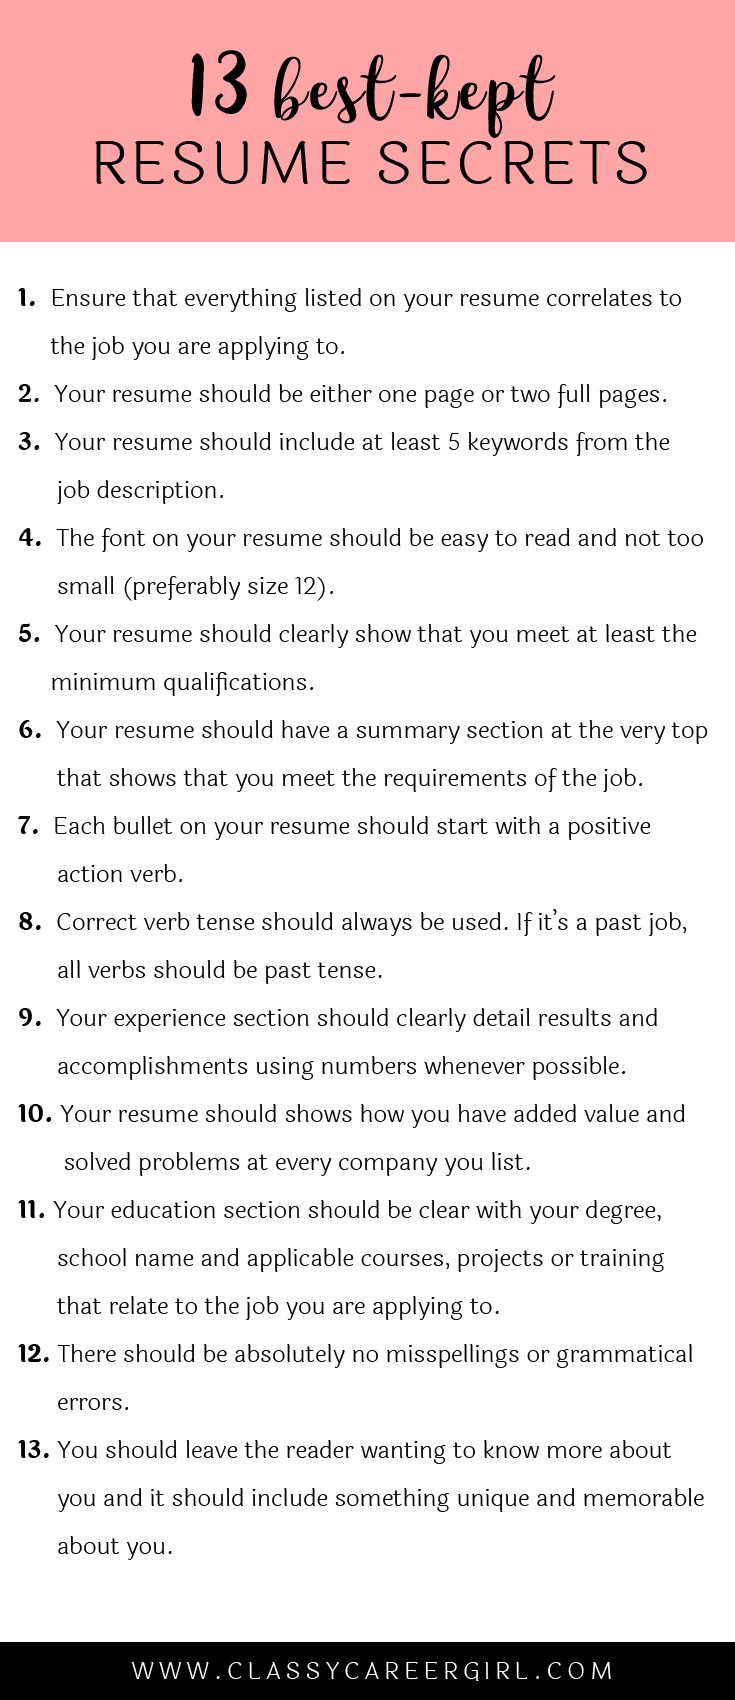 Opposenewapstandardsus  Remarkable  Ideas About Resume On Pinterest  Cv Format Resume Cv And  With Exciting Some Hiring Managers Will Toss Your Resume Out If You Dont Know These  With Cool Cook Resumes Also Career Cruising Resume In Addition Resume For Food Server And Hobbies And Interests On Resume As Well As Nursing Resumes For New Grads Additionally Resume Objective Examples Entry Level From Pinterestcom With Opposenewapstandardsus  Exciting  Ideas About Resume On Pinterest  Cv Format Resume Cv And  With Cool Some Hiring Managers Will Toss Your Resume Out If You Dont Know These  And Remarkable Cook Resumes Also Career Cruising Resume In Addition Resume For Food Server From Pinterestcom